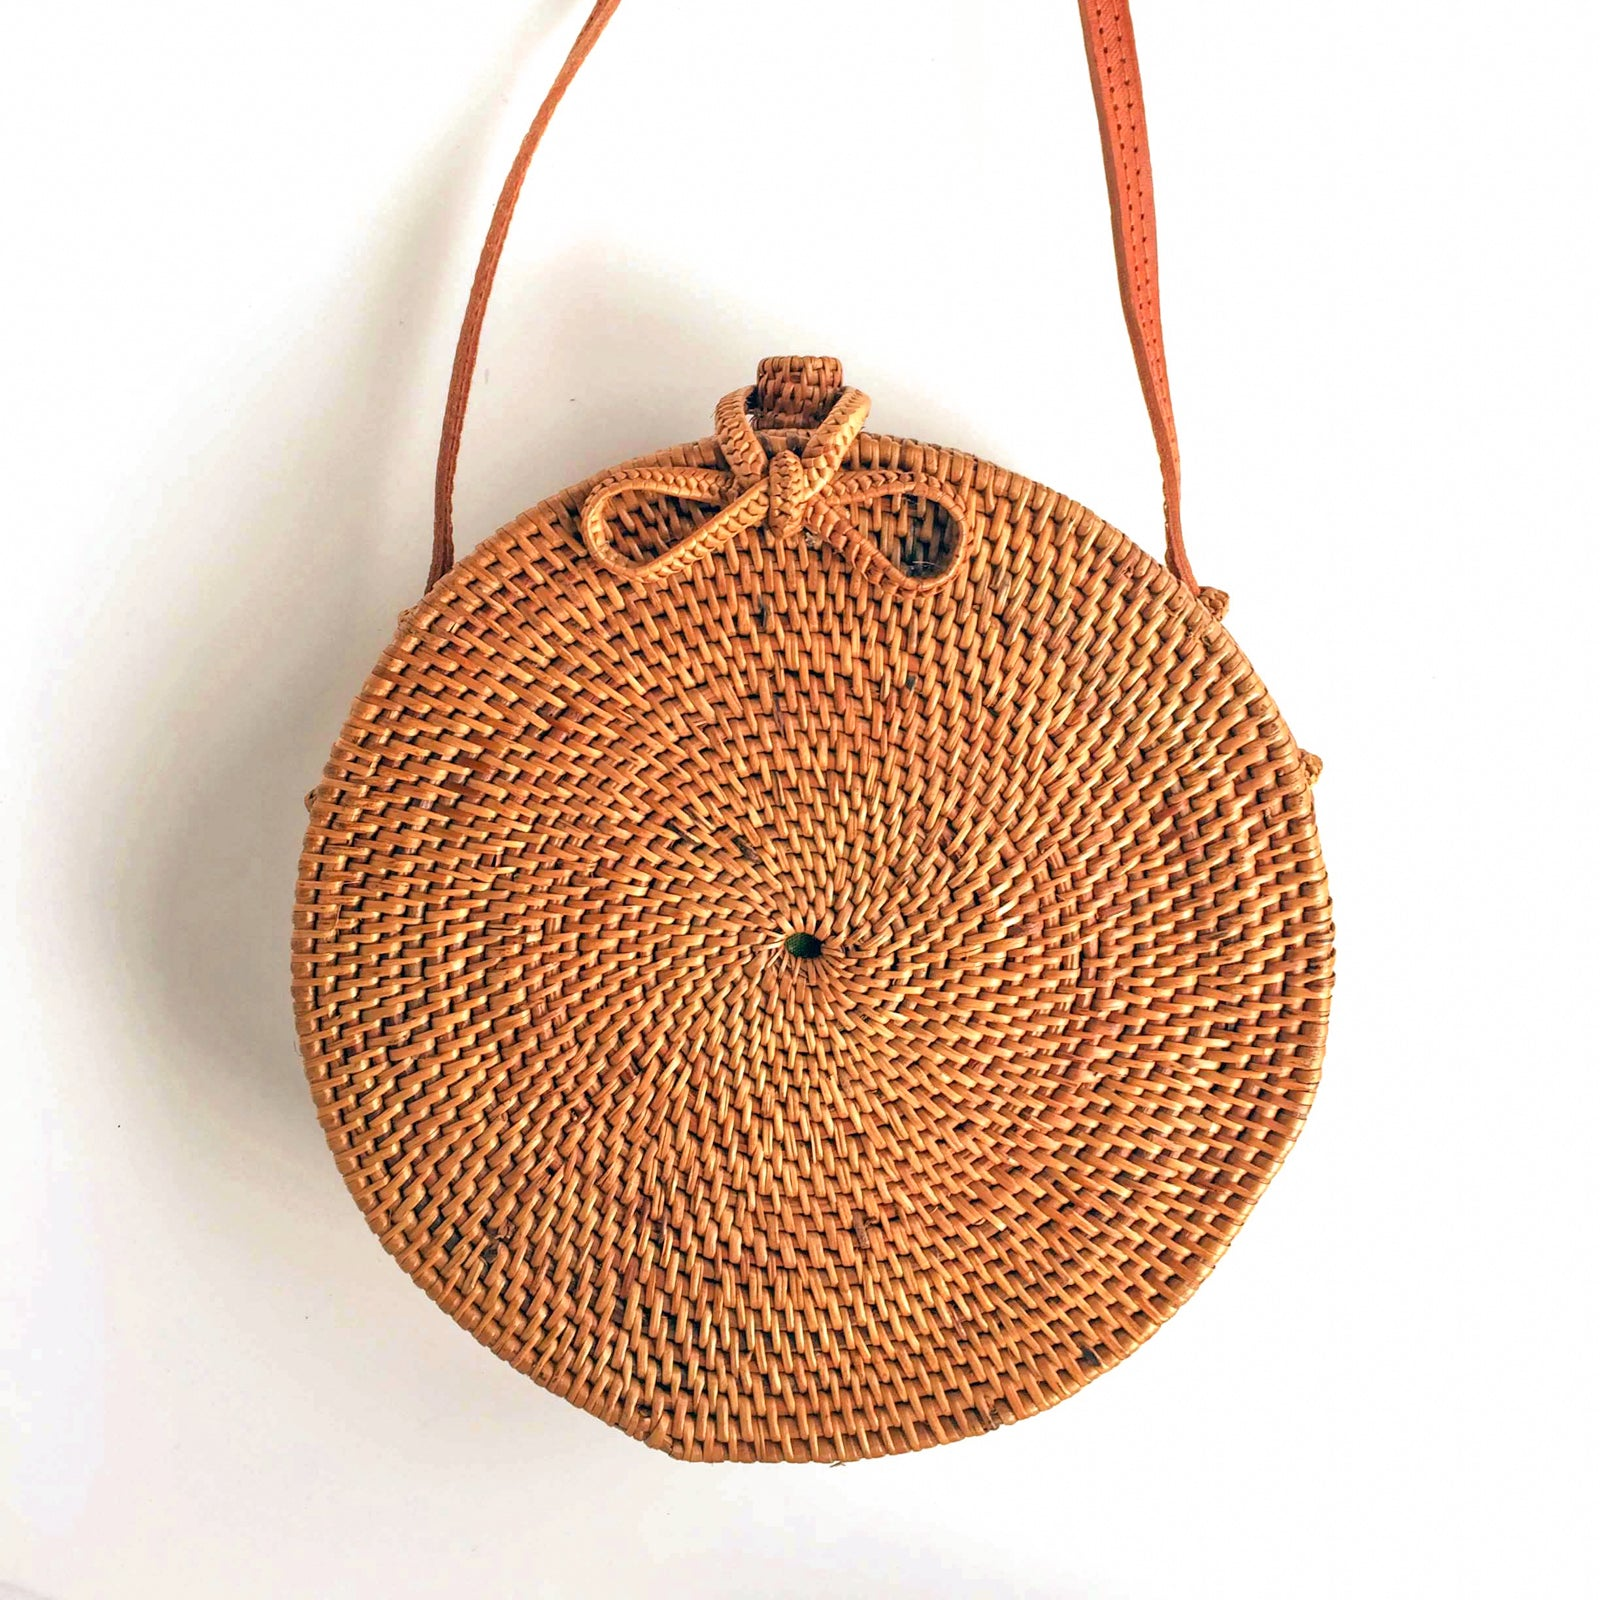 natural bow fastener design on round woven rattan bohemian bag